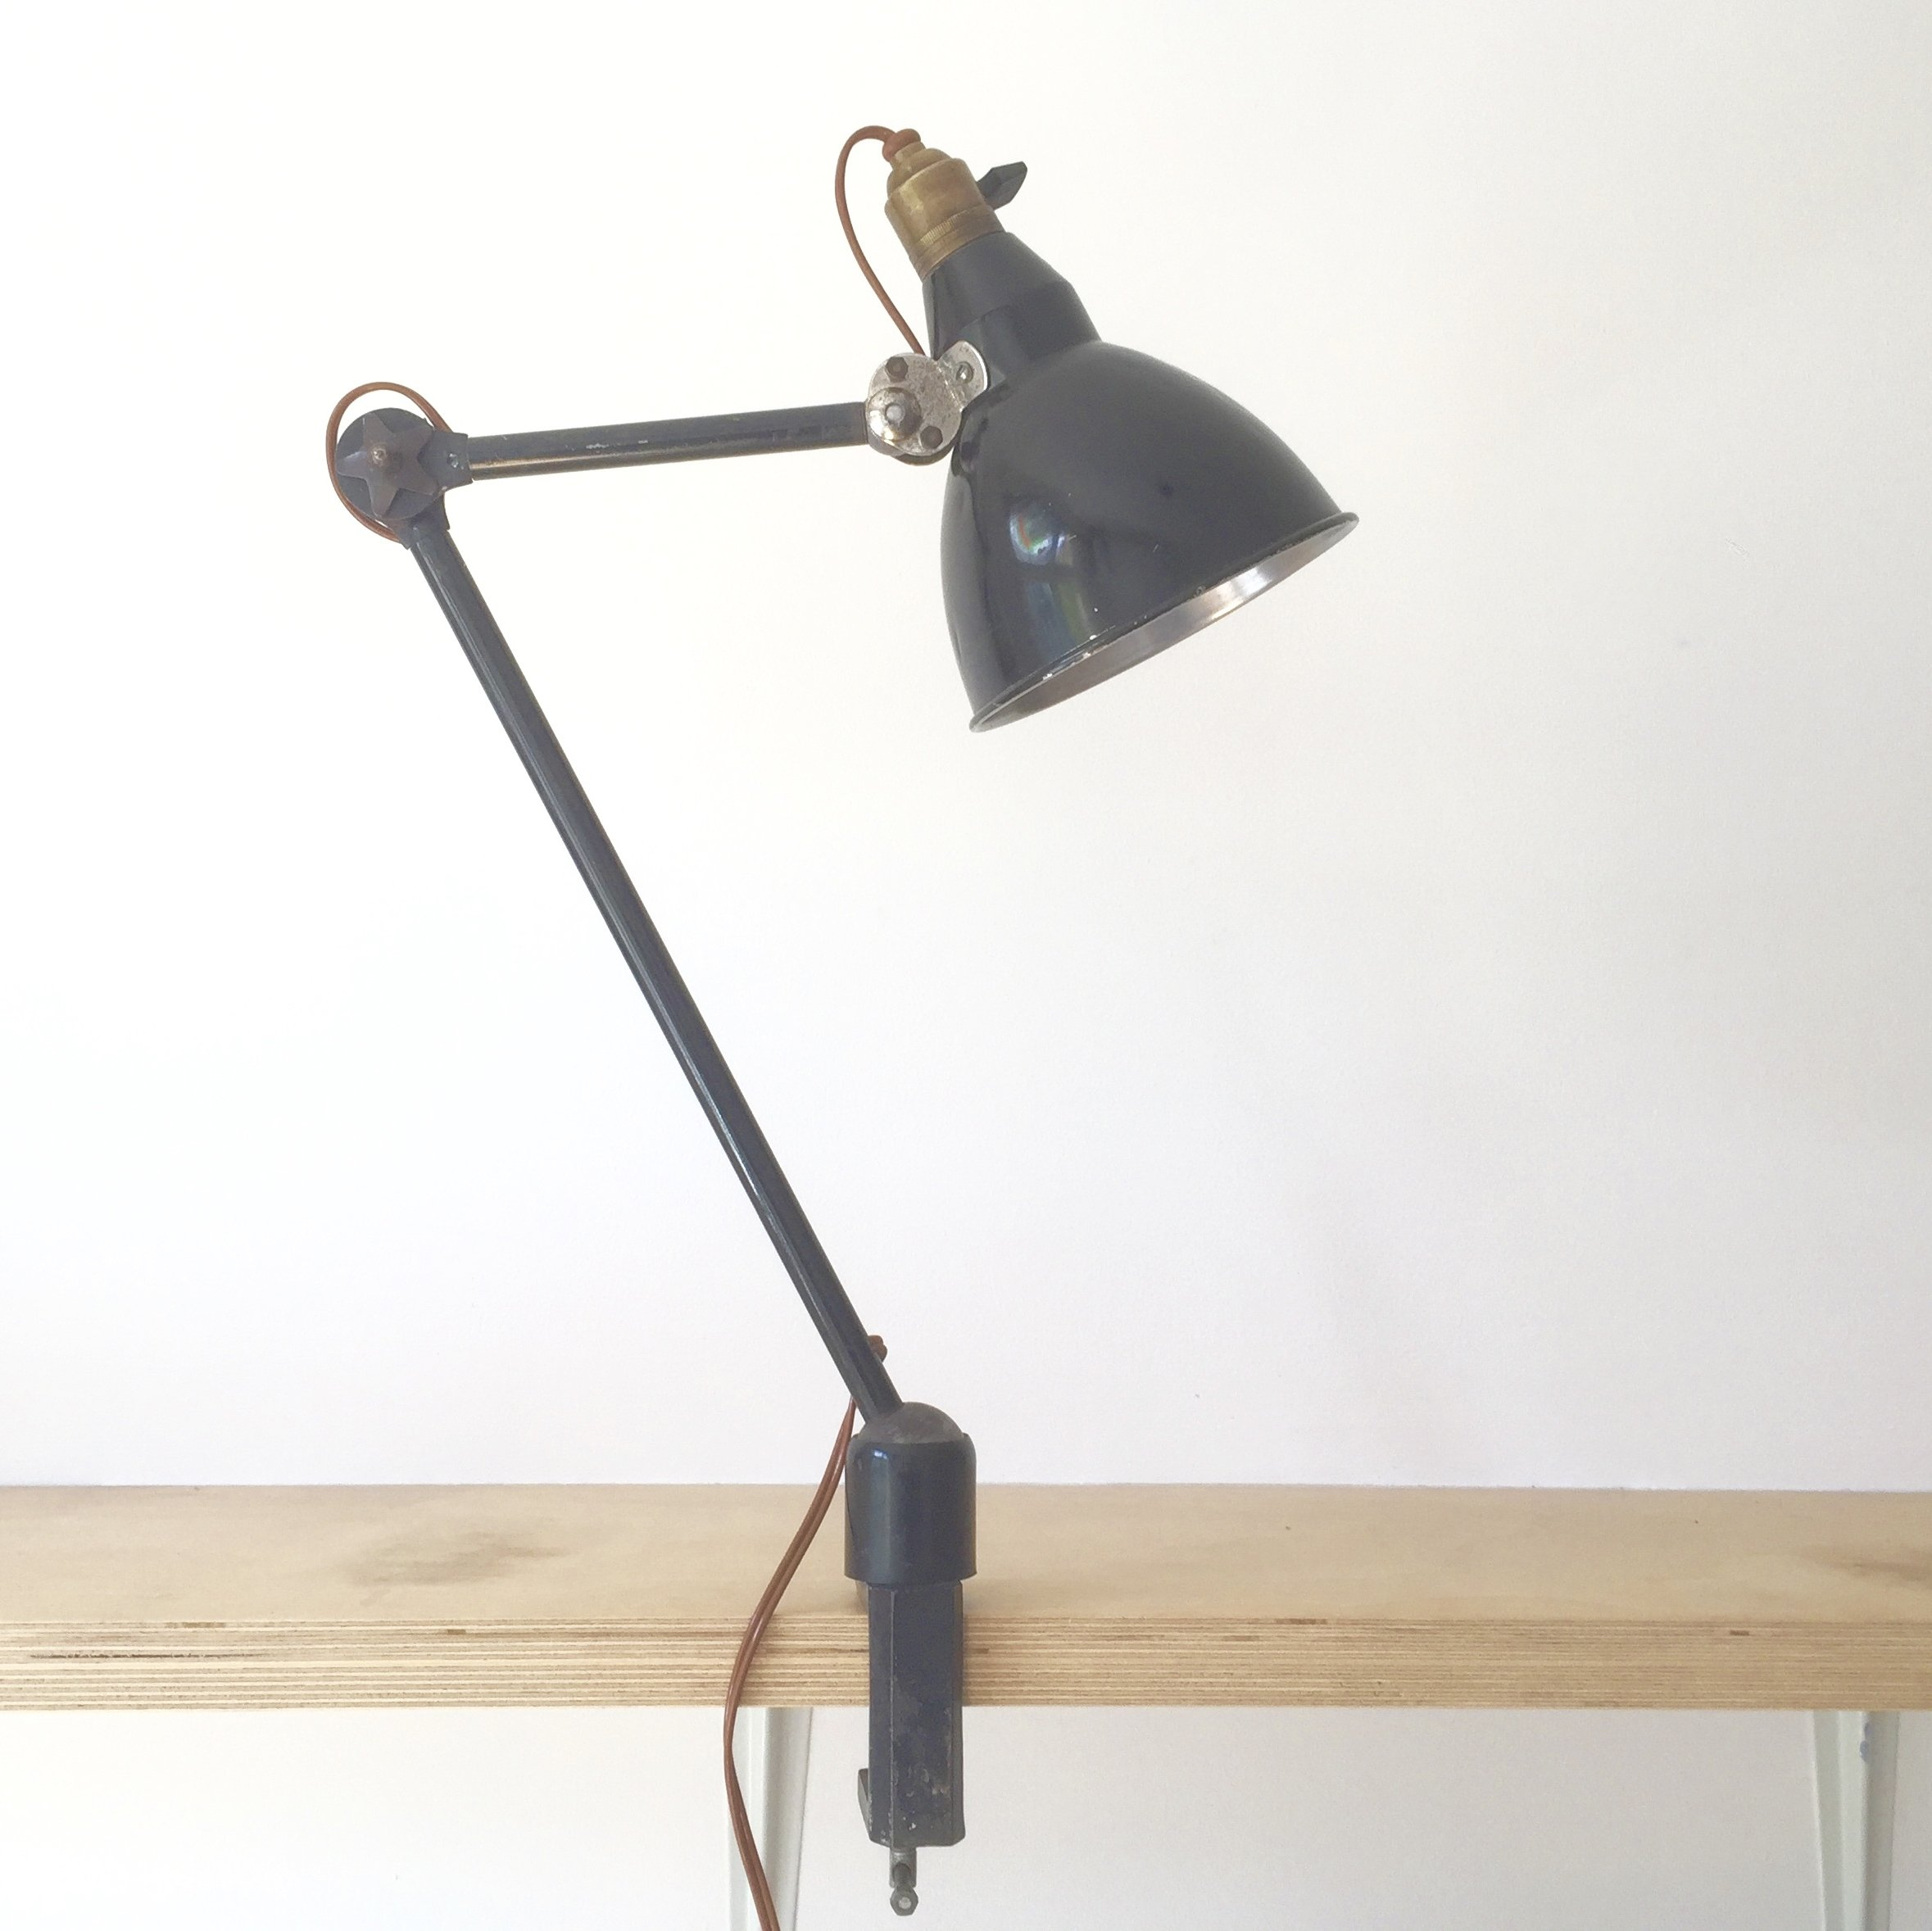 1930s French 2 Arm Bench Desk Clamp Lamp By Mazda